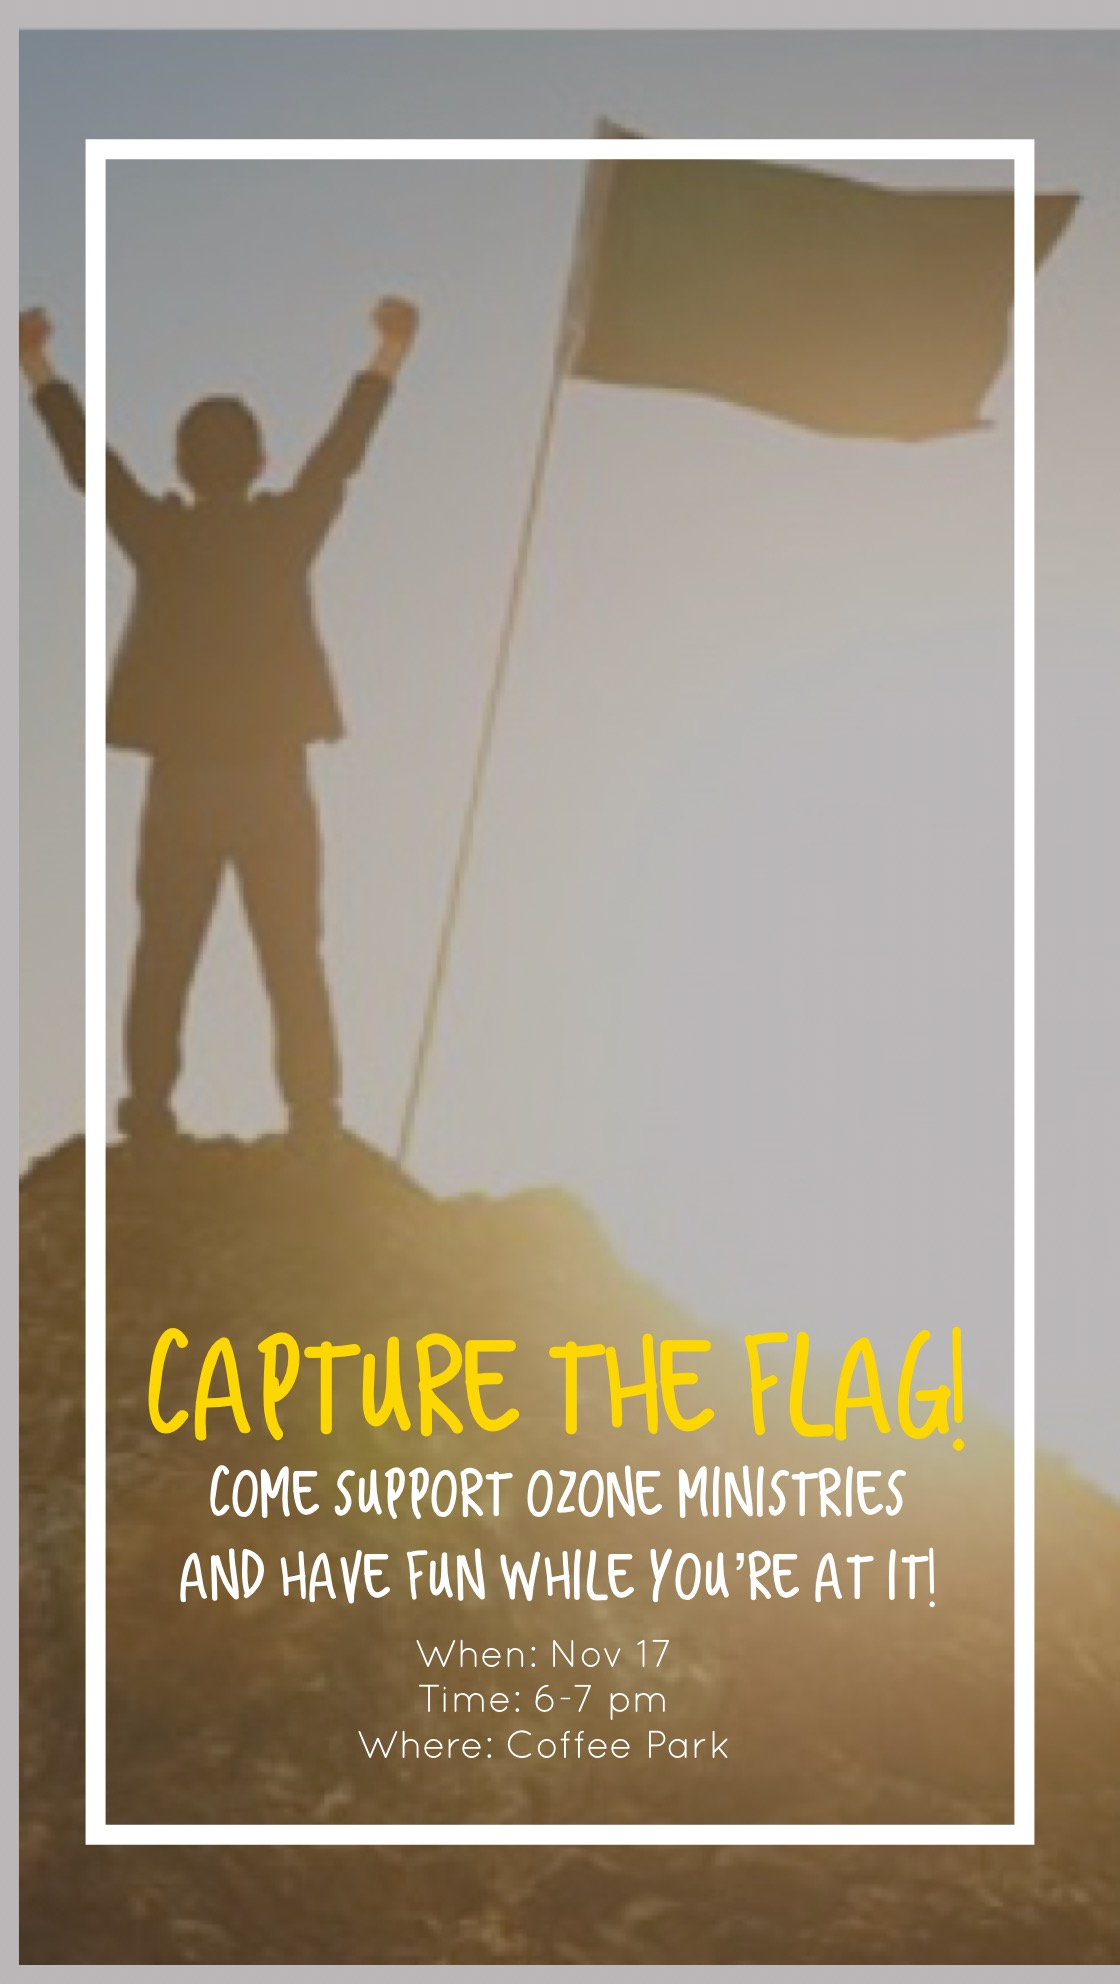 Dallas Ozone Capture the Flag